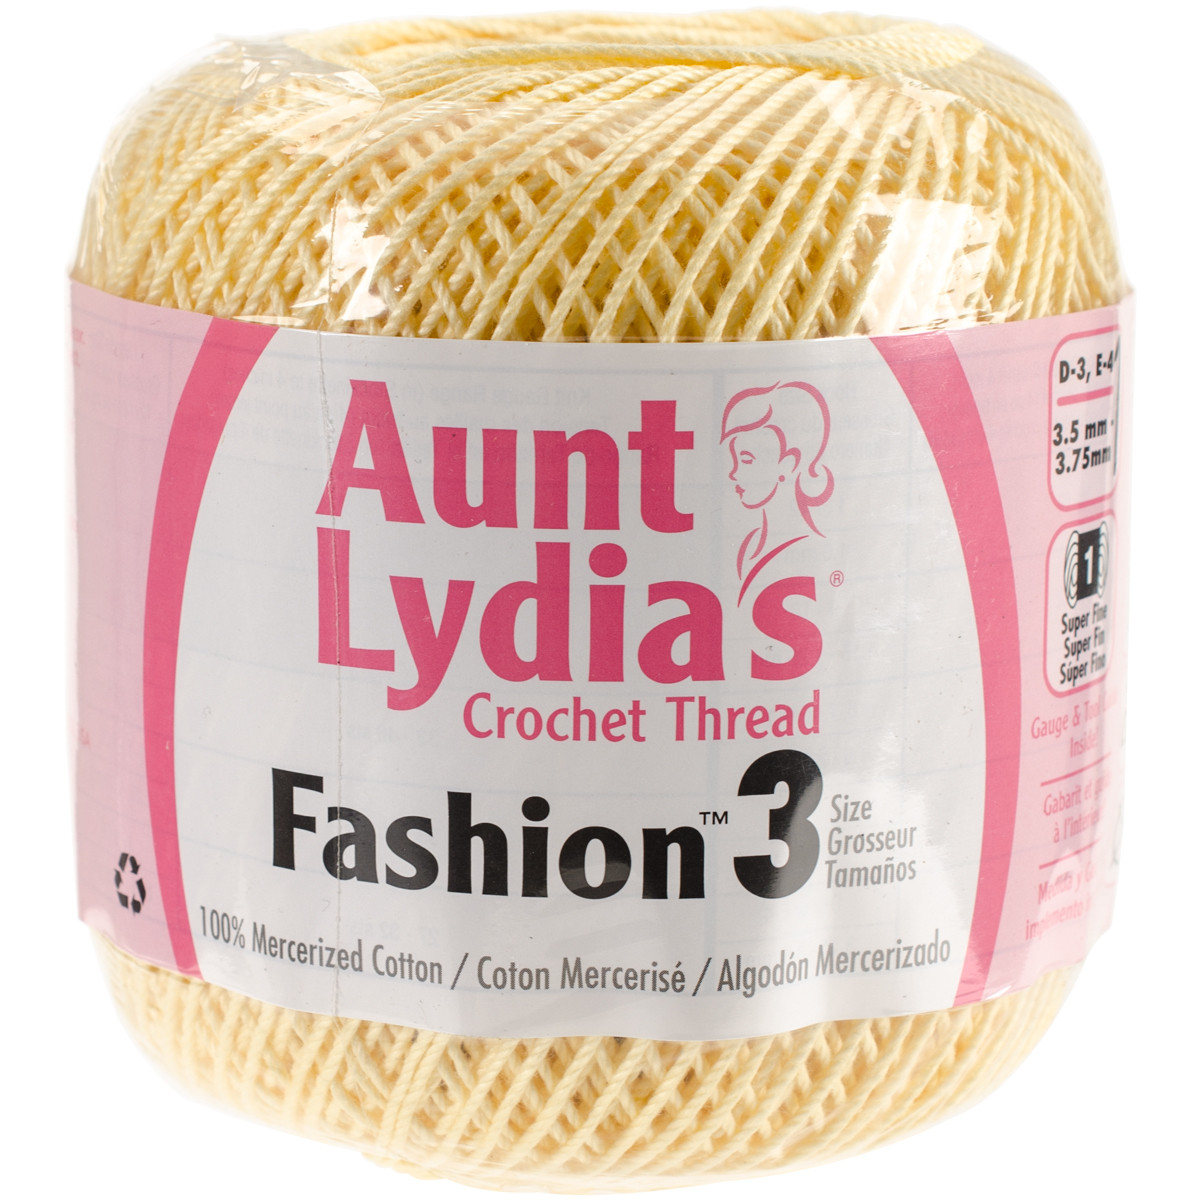 Crochet Thread Size 3 Awesome Aunt Lydia S Fashion Crochet Thread Size 3 Maize Of Gorgeous 46 Ideas Crochet Thread Size 3